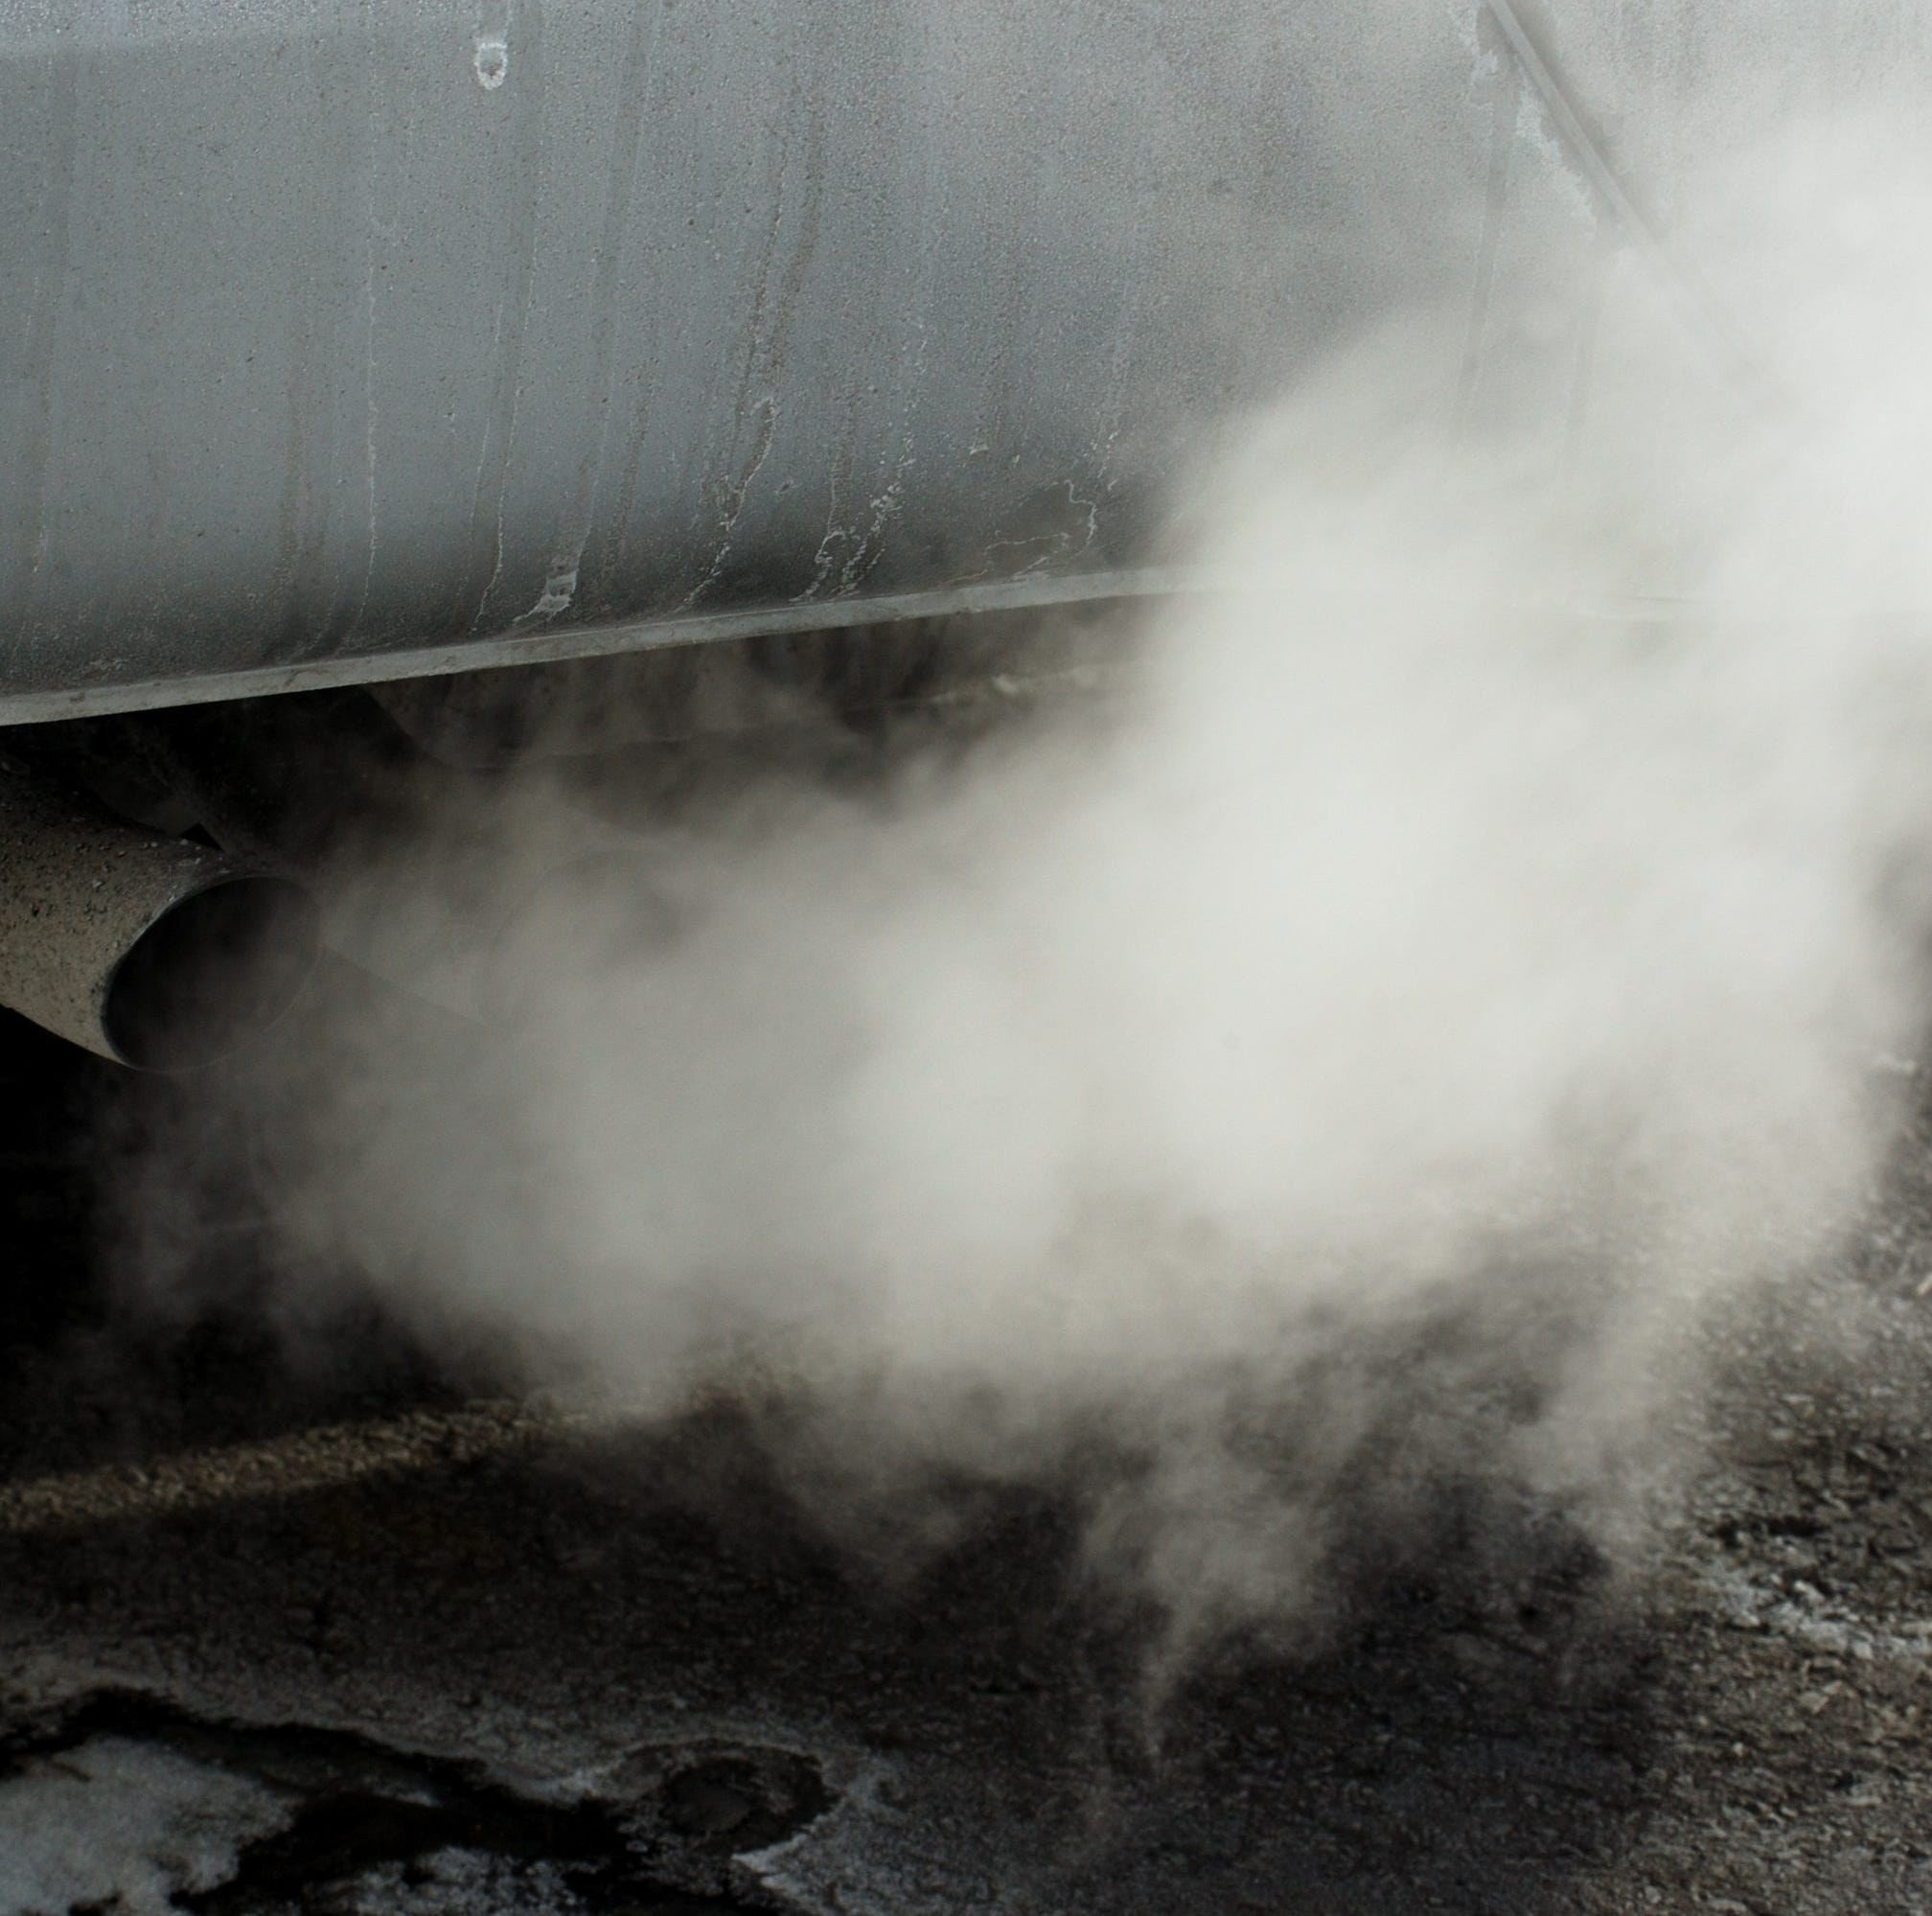 Ever leave your car idling unattended? It can cost you.